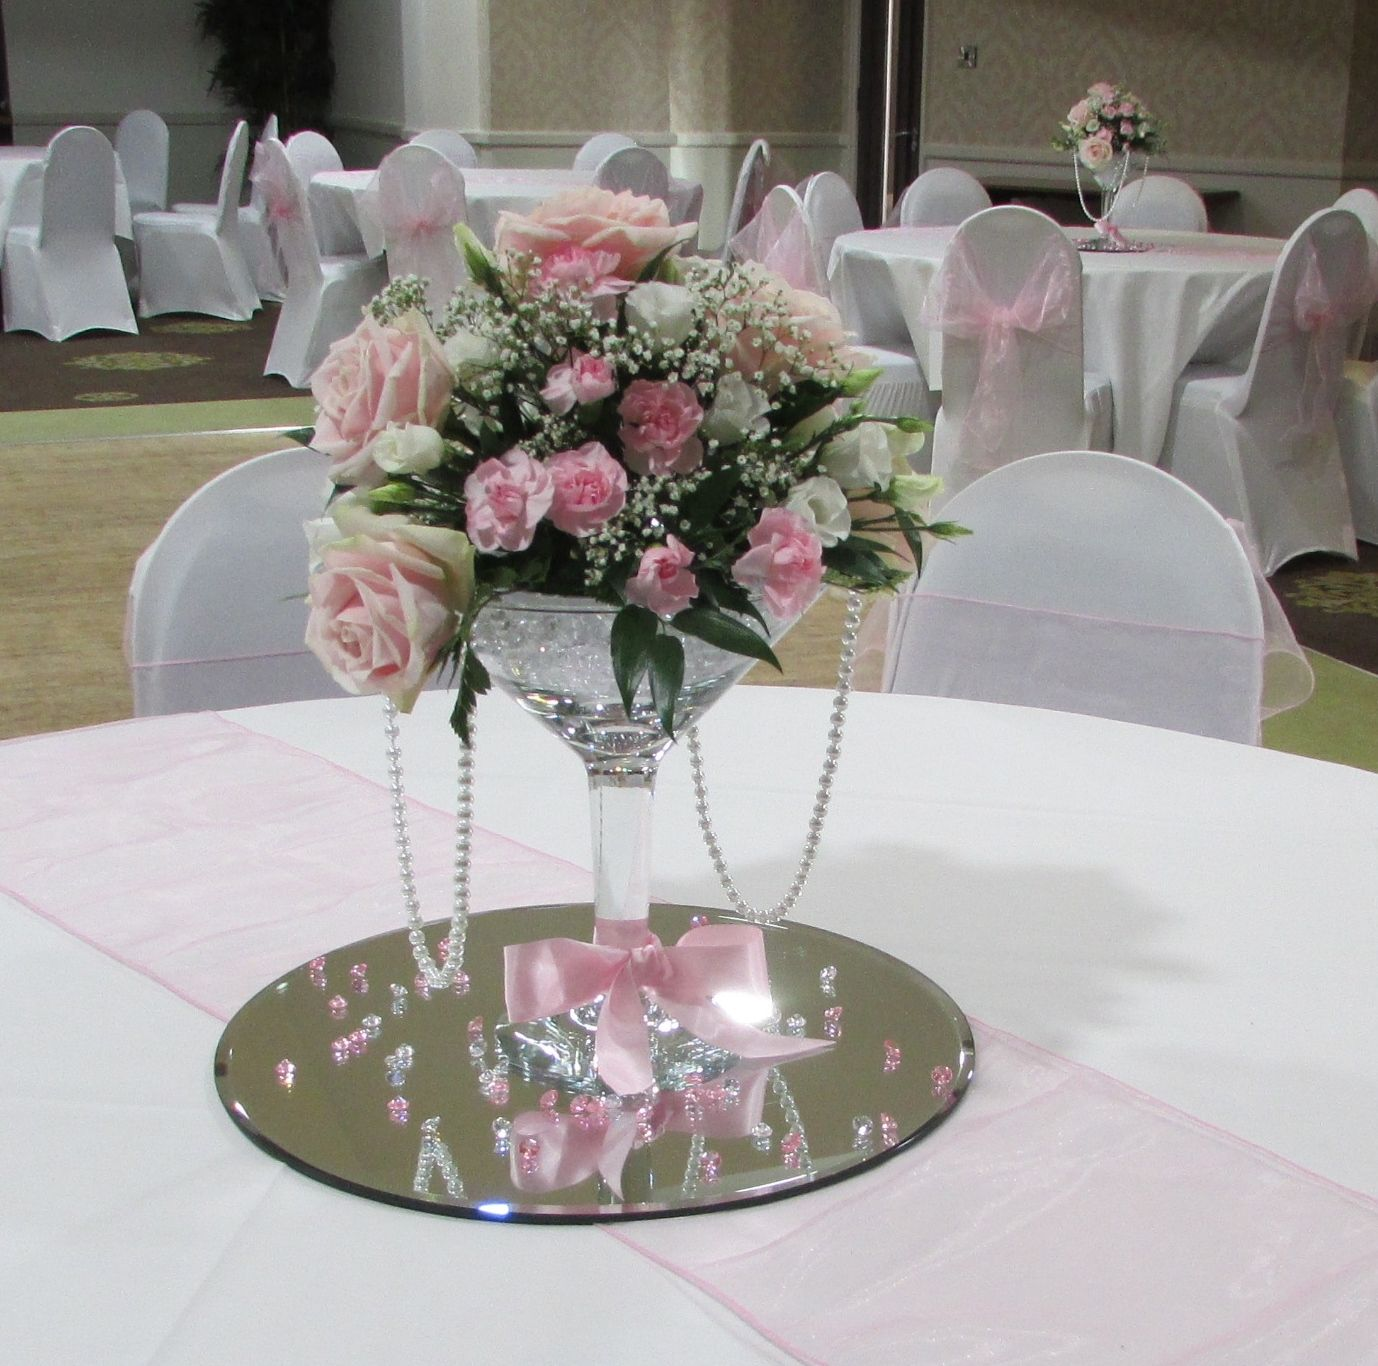 Flowers For Wedding Table Centerpieces: Grand Martini Vase With Fresh Flowers In Pinks, Ribbon And